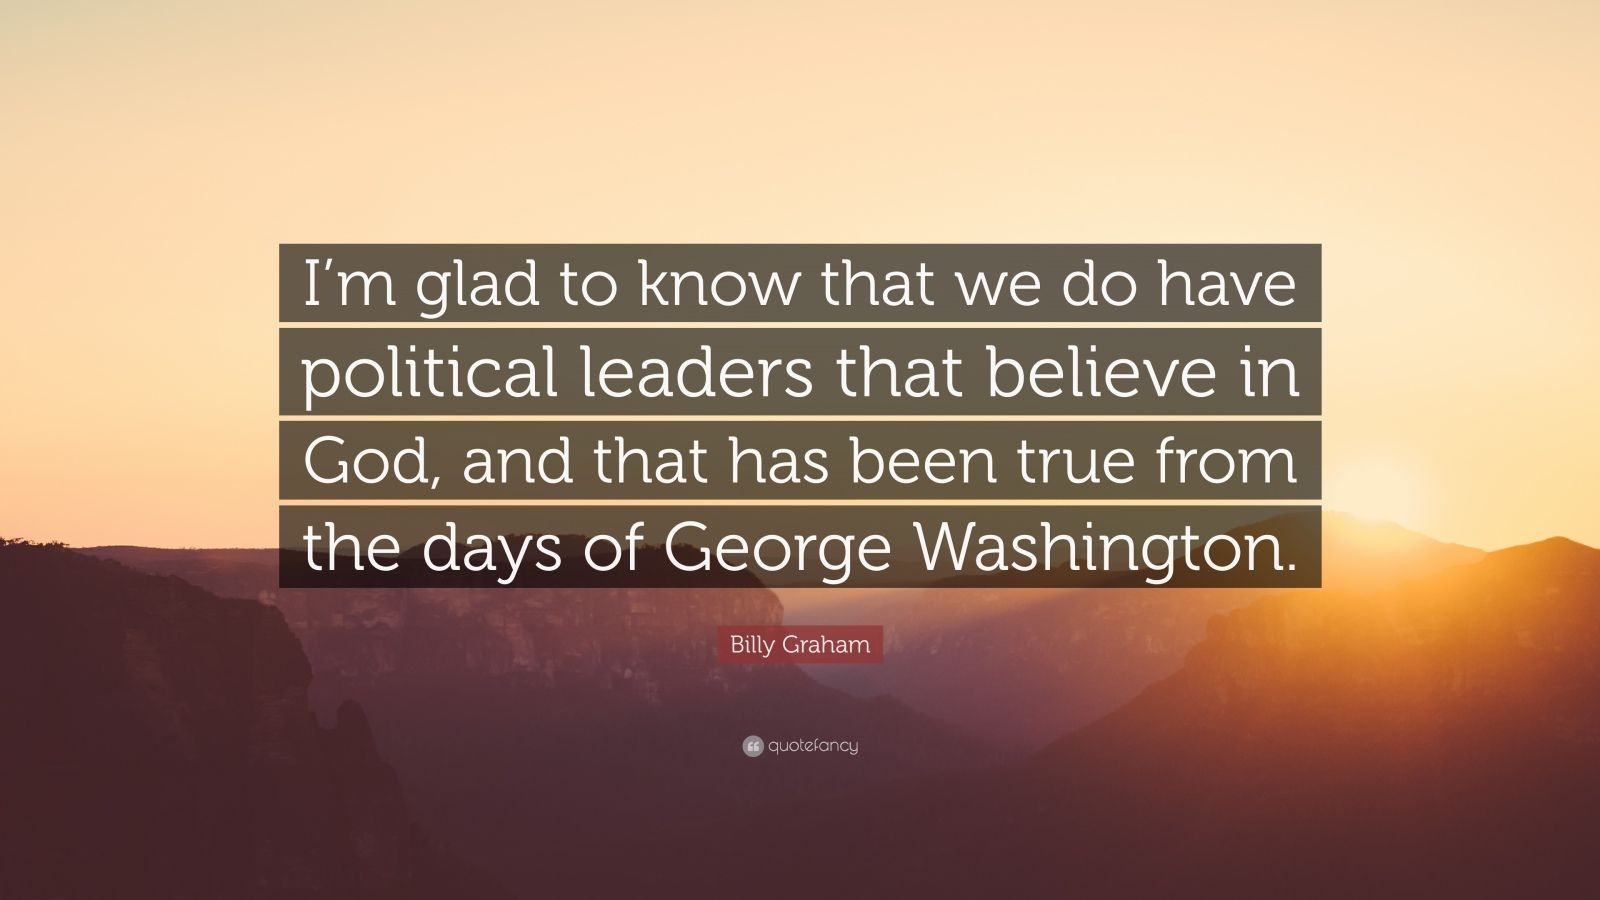 """Billy Graham Quote: """"I'm glad to know that we do have political leaders that believe in God, and that has been true from the days of George Washington."""""""